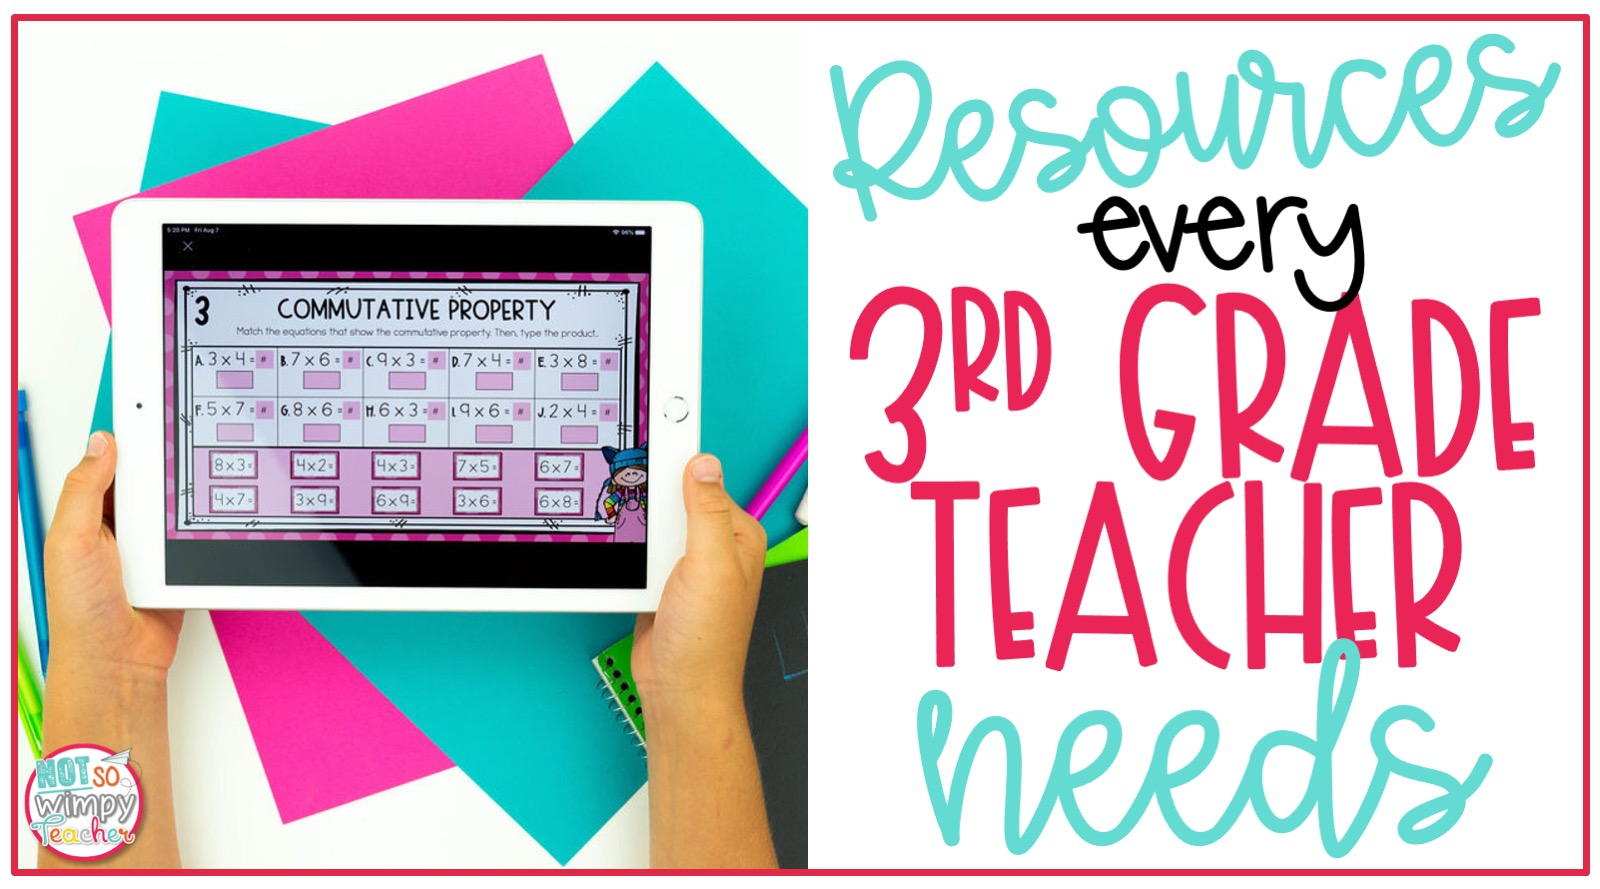 Resources Every 3rd Grade Teacher Needs - Not So Wimpy Teacher